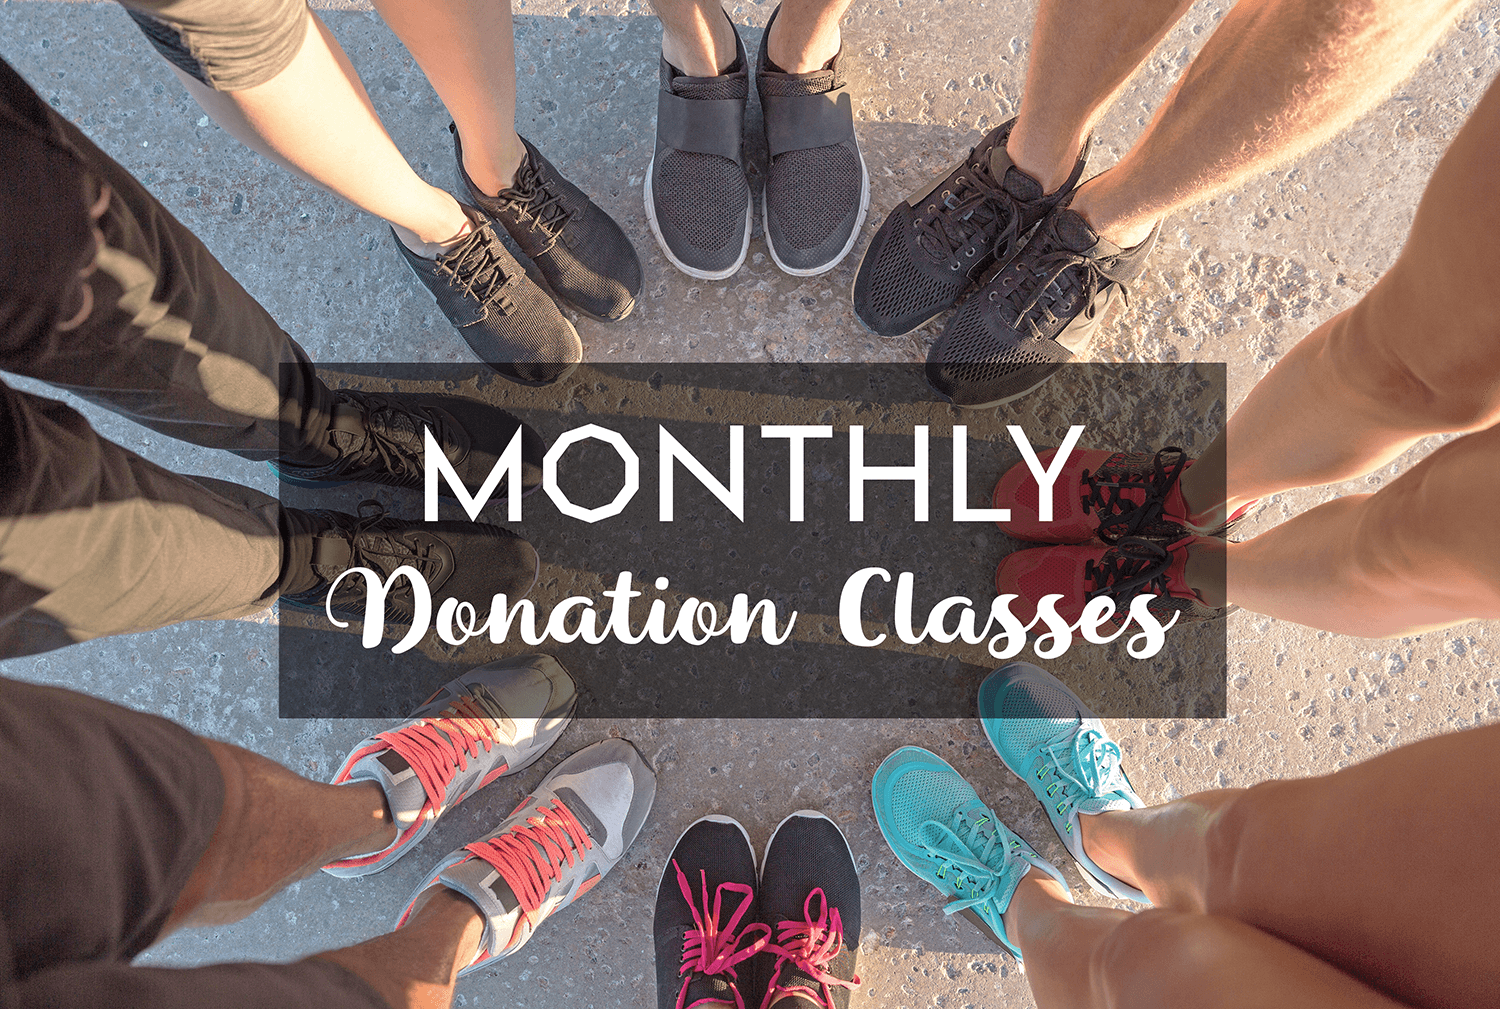 Our Monthly Donation Classes